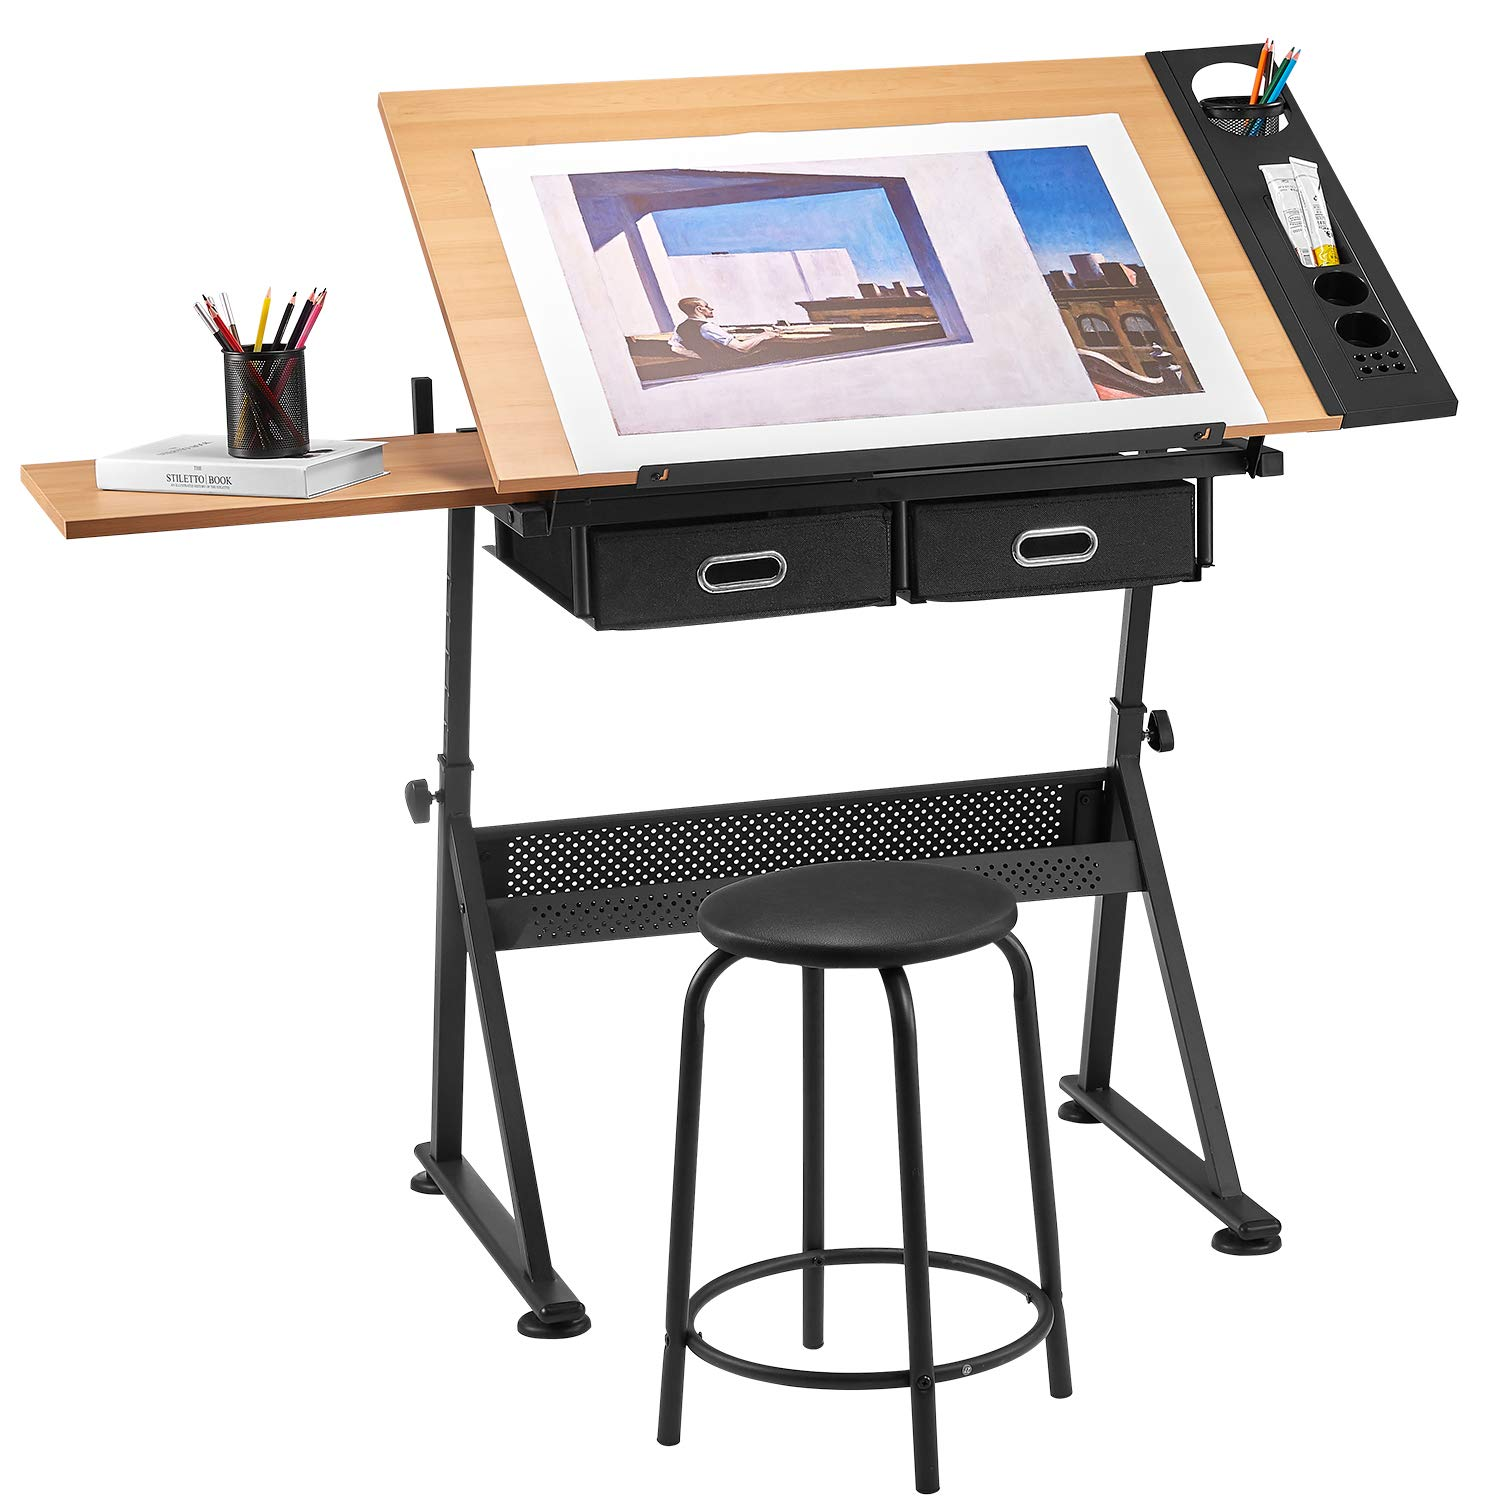 Phenomenal Topeakmart Glass Adjustable Rolling Drafting Drawing Artists Table Folding Art Craft Desk W 2 Slide Drawers And Wheels Creativecarmelina Interior Chair Design Creativecarmelinacom